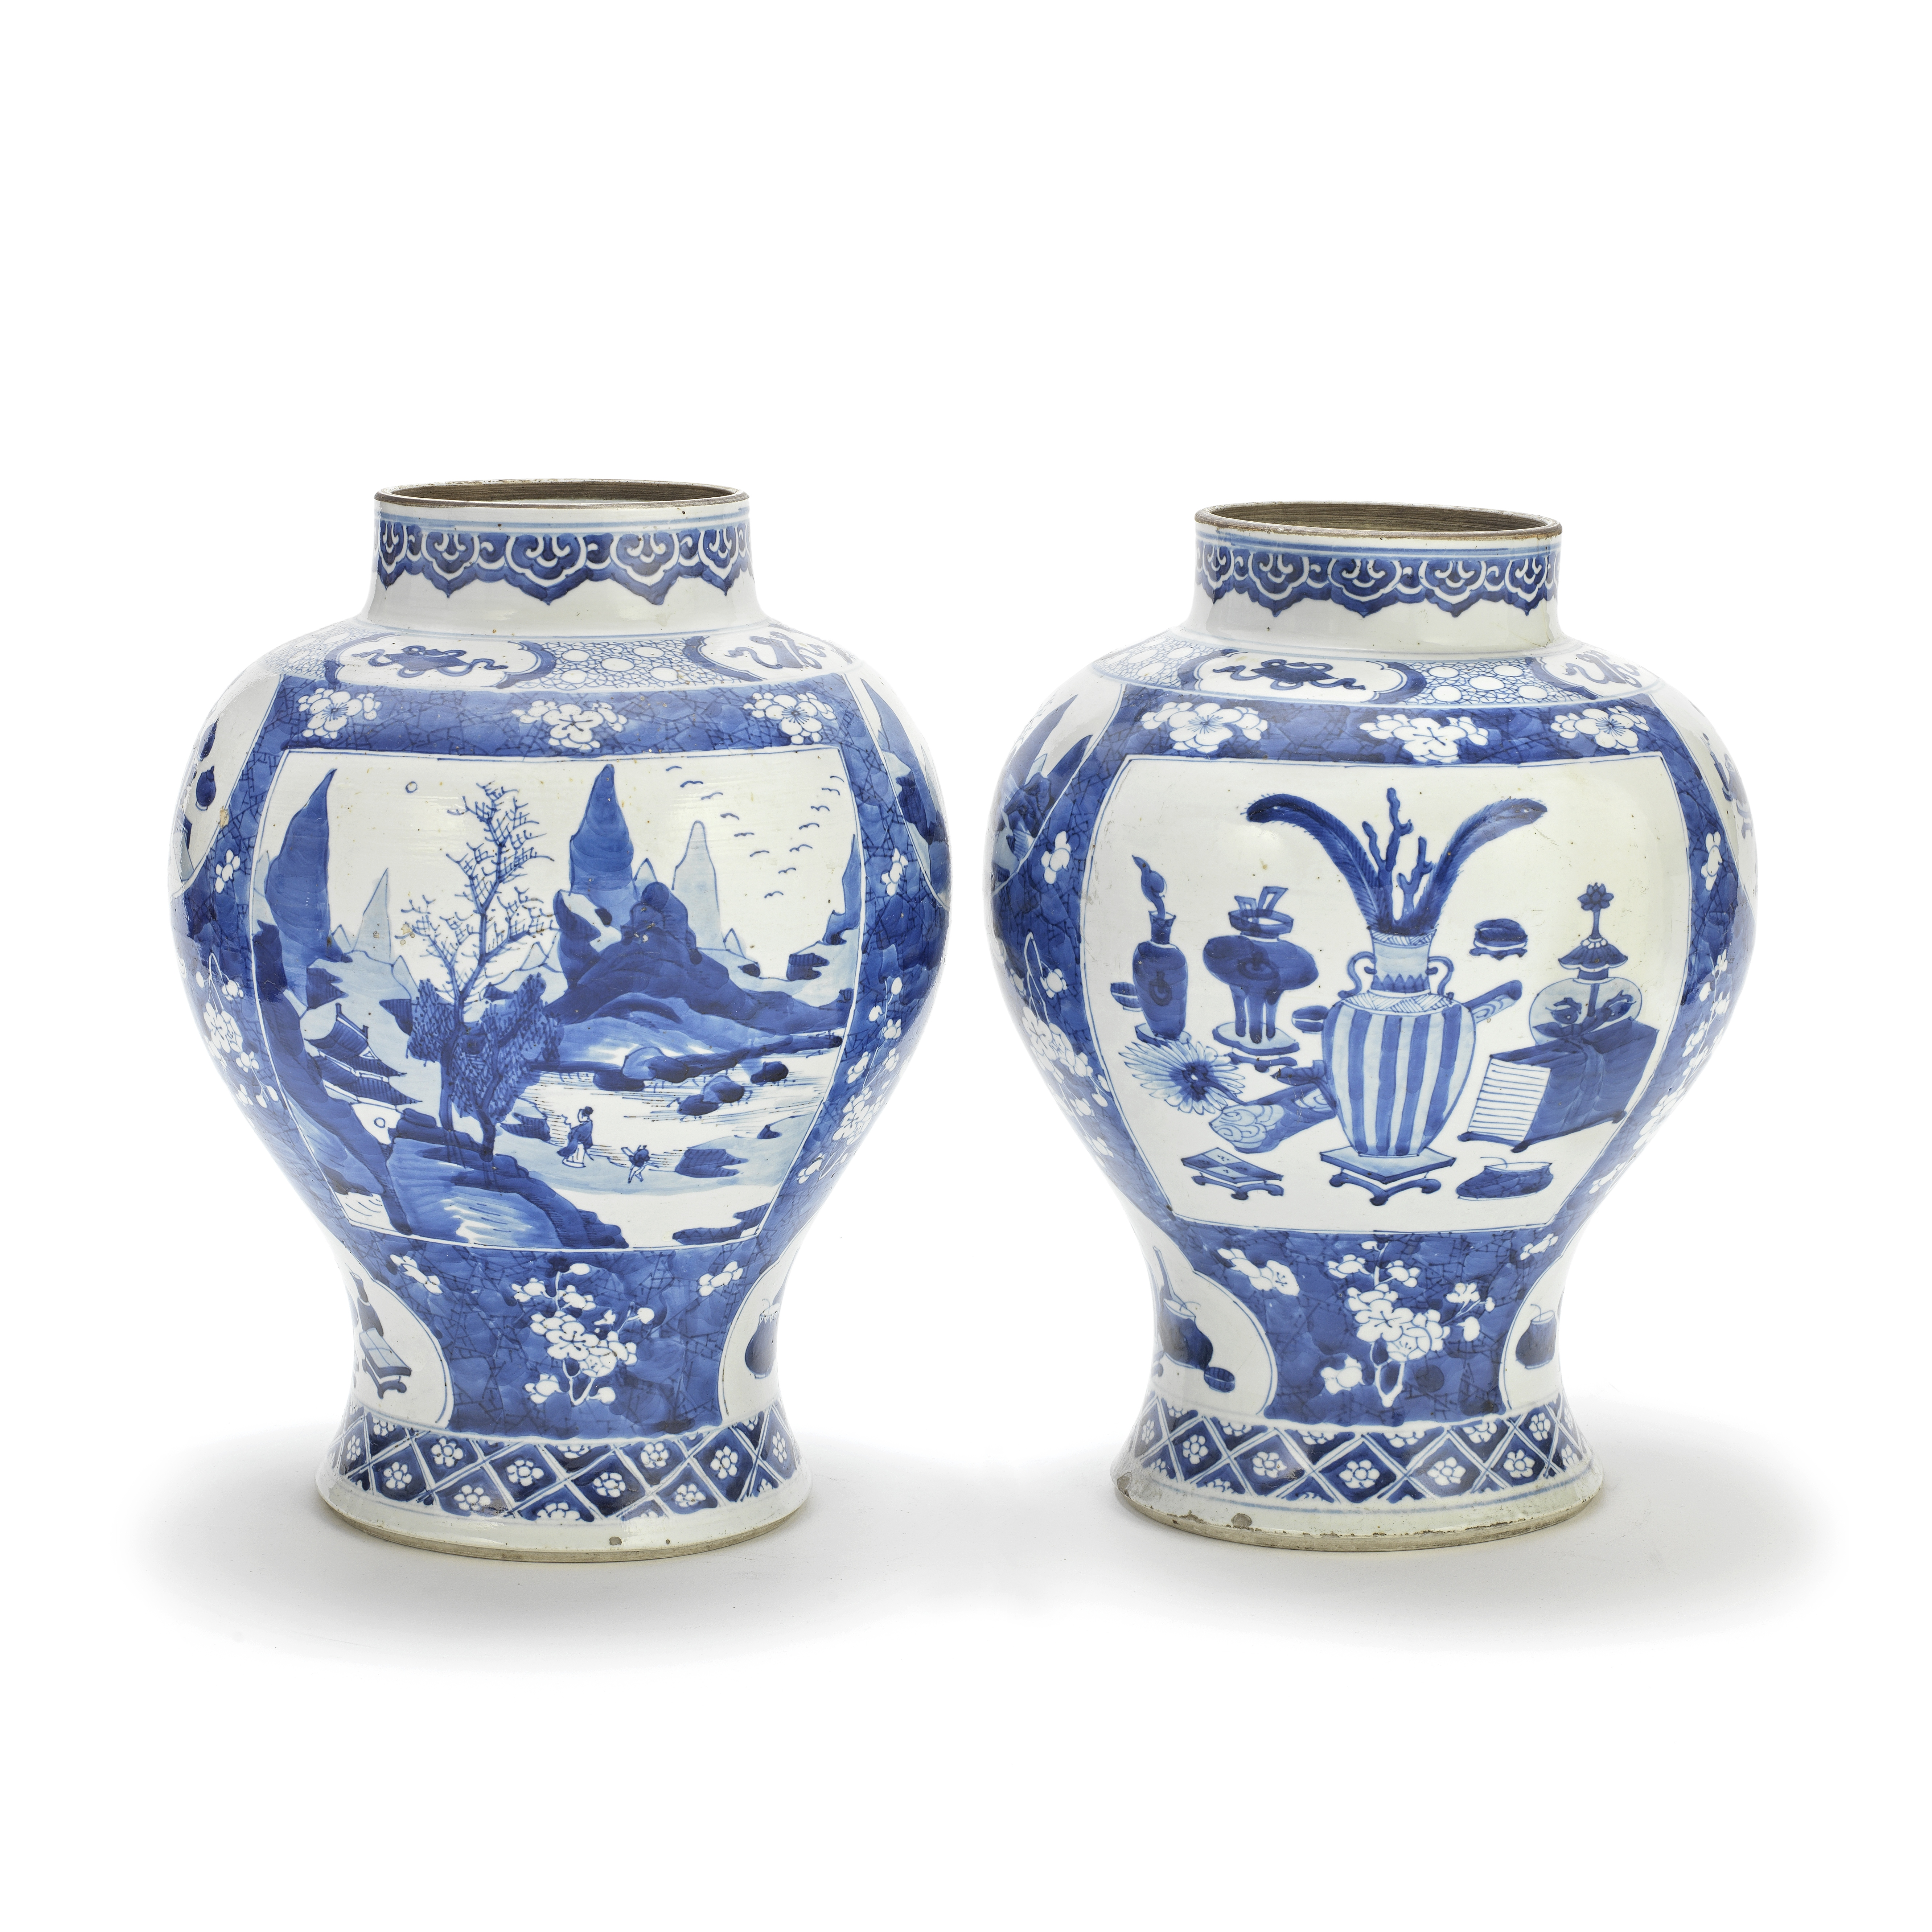 A PAIR OF KANGXI-REVIVAL BLUE AND WHITE JARS 19th century (2)